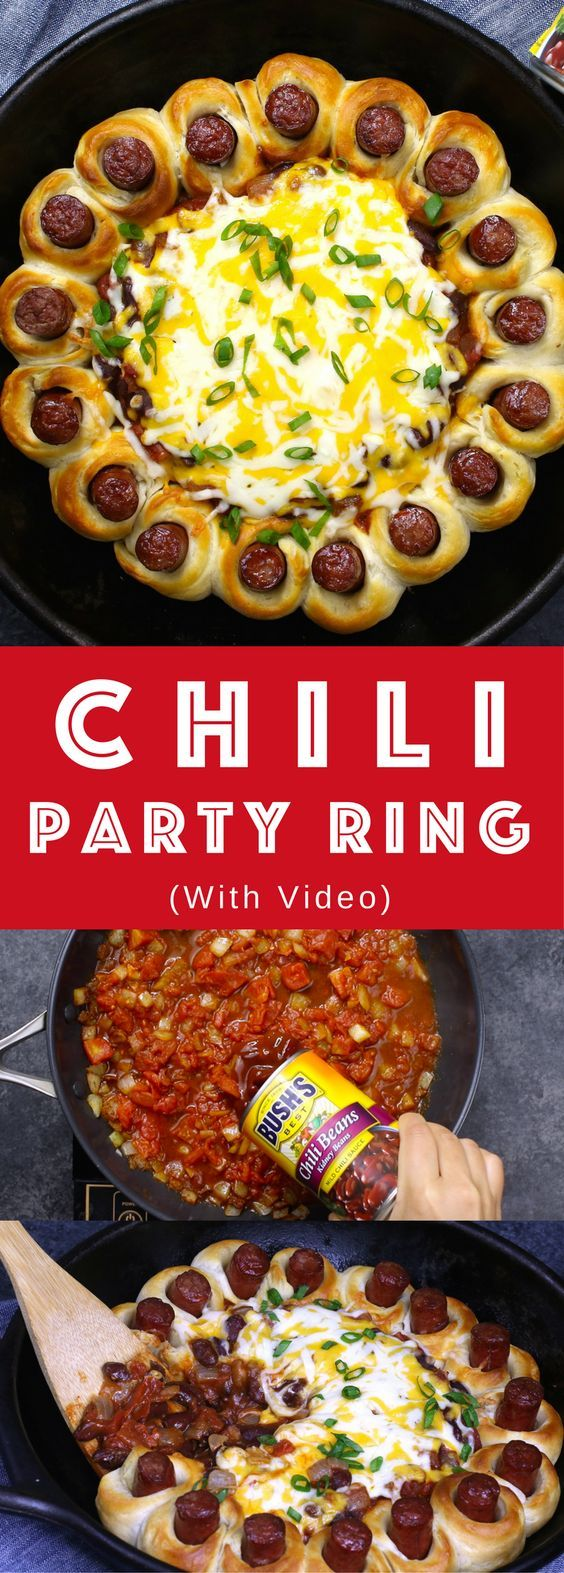 Chili Party Ring – the most delicious appetizer to share at your next party. Easy to make in only 30 minutes with a few simple ingredients: Biscuit dough, your favorite hot dogs, onions, chili powder, cumin, Hunt's Tomatoes, BUSH's slow-simmered chili beans, shredded cheese and green onions. So good. Video recipe.AD